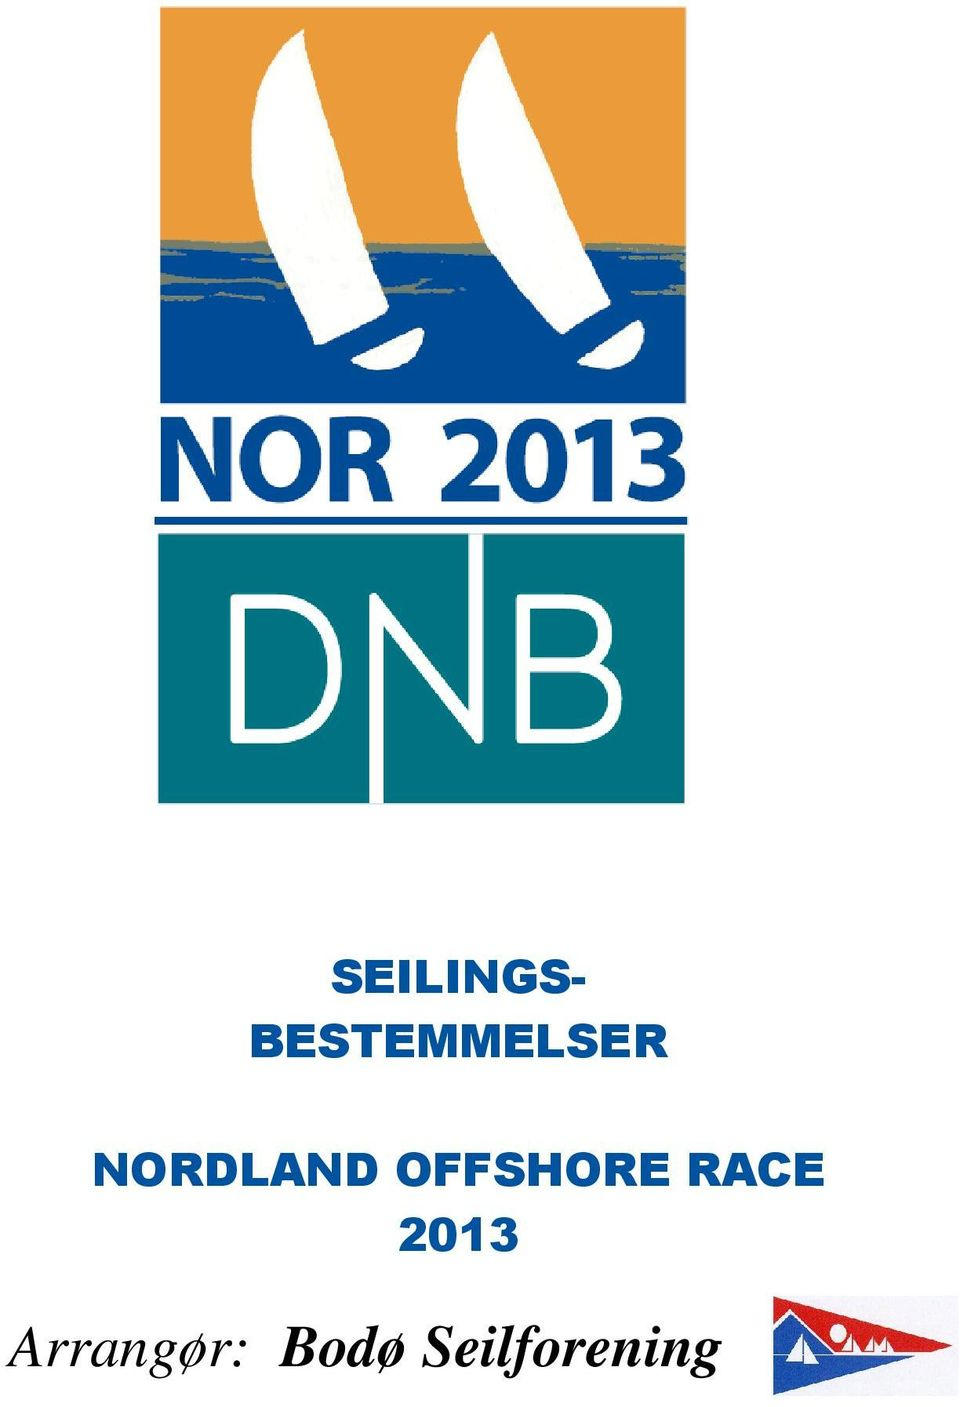 NORDLAND OFFSHORE